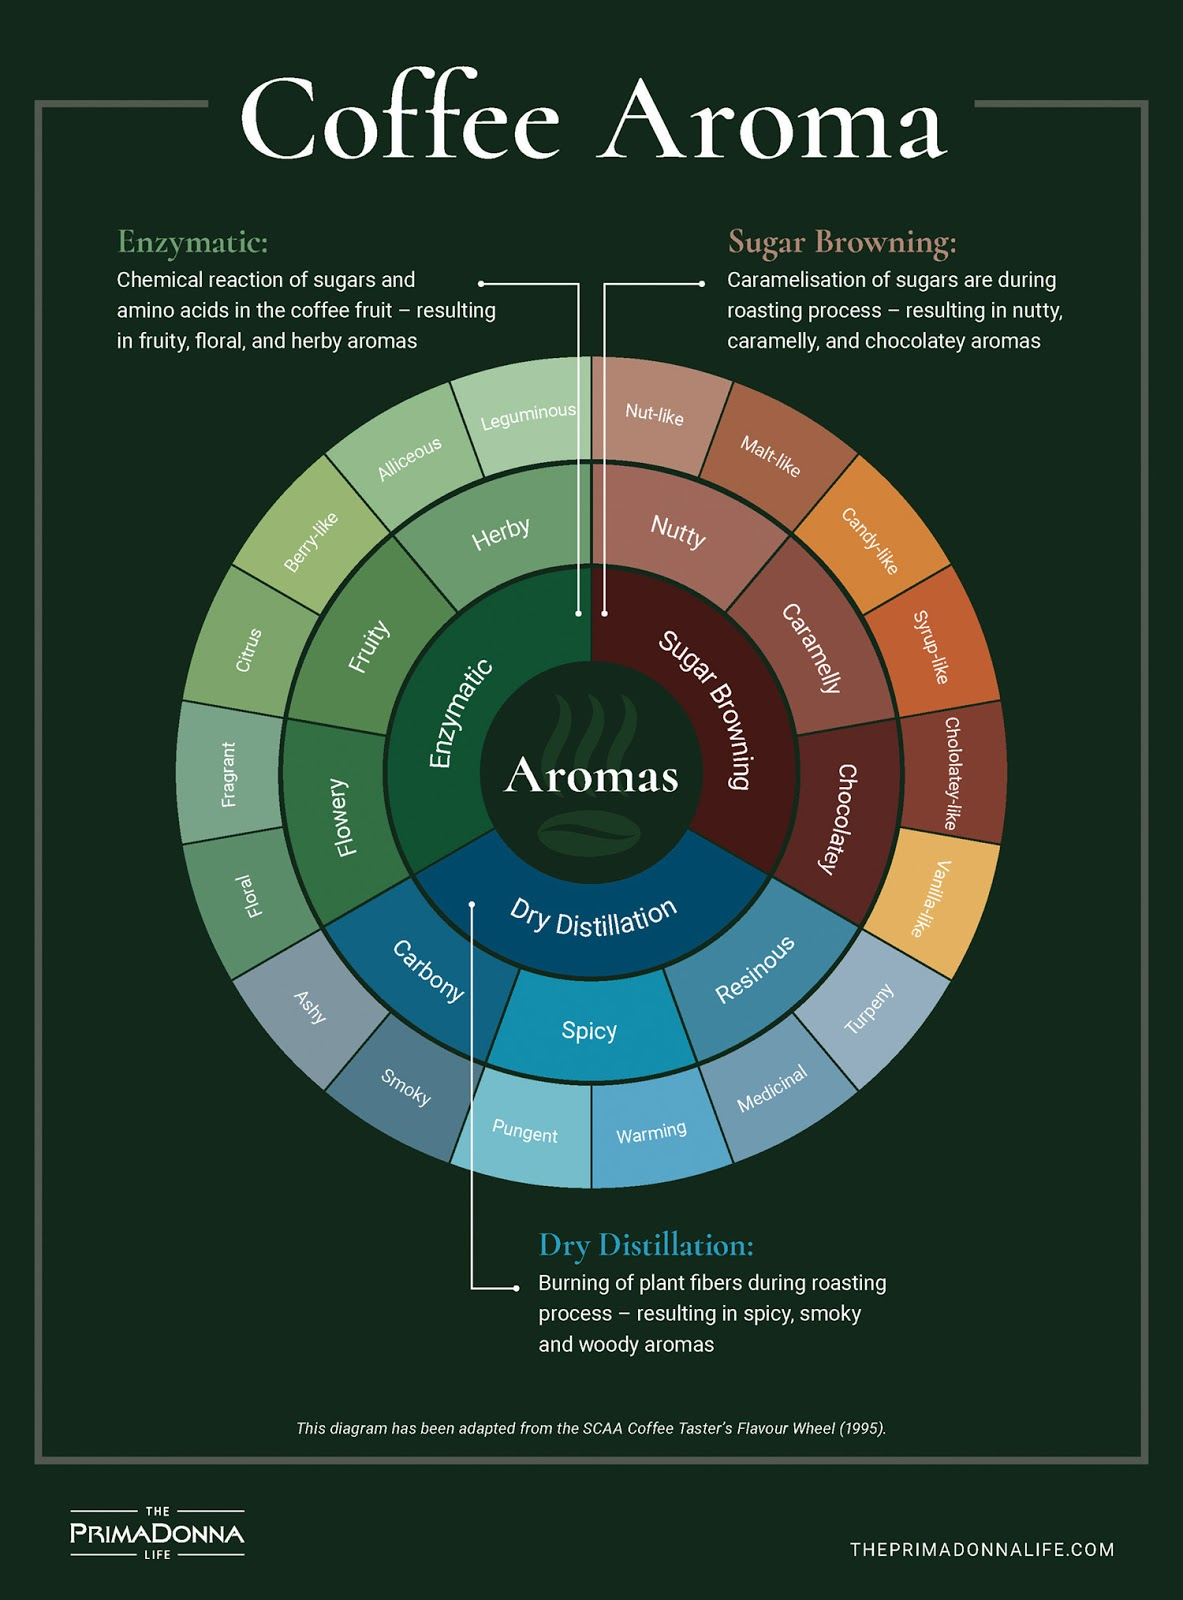 An abridged version of the coffee tasting wheel, where we break down the scent notes a coffee can have, and how they are classified by professional baristas